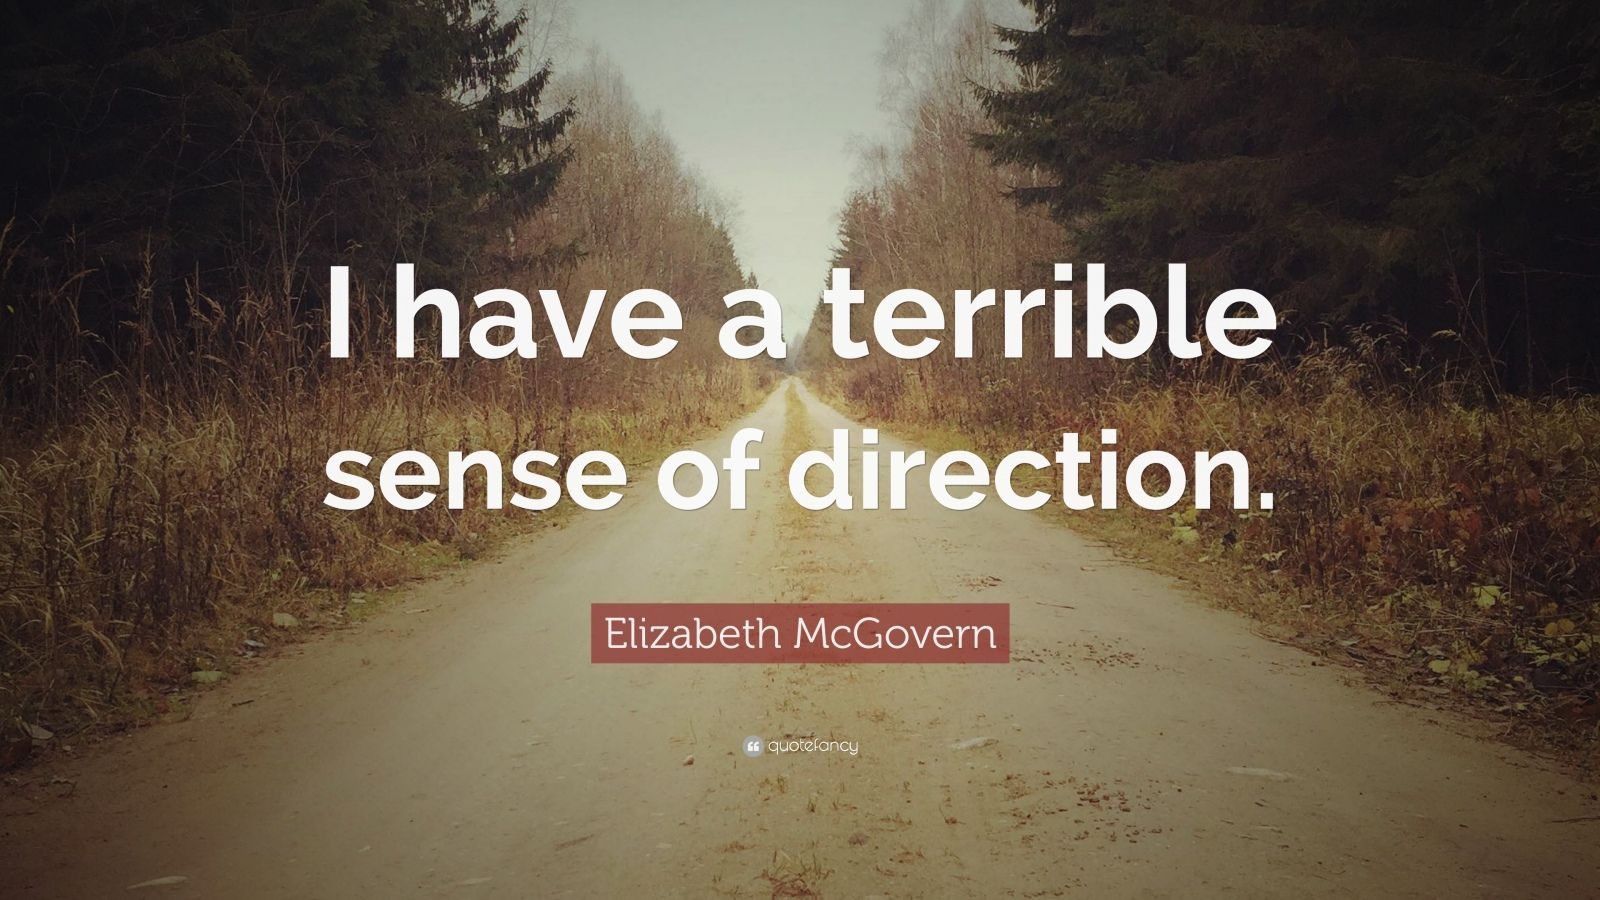 Elizabeth McGovern Quotes (31 Wallpapers)